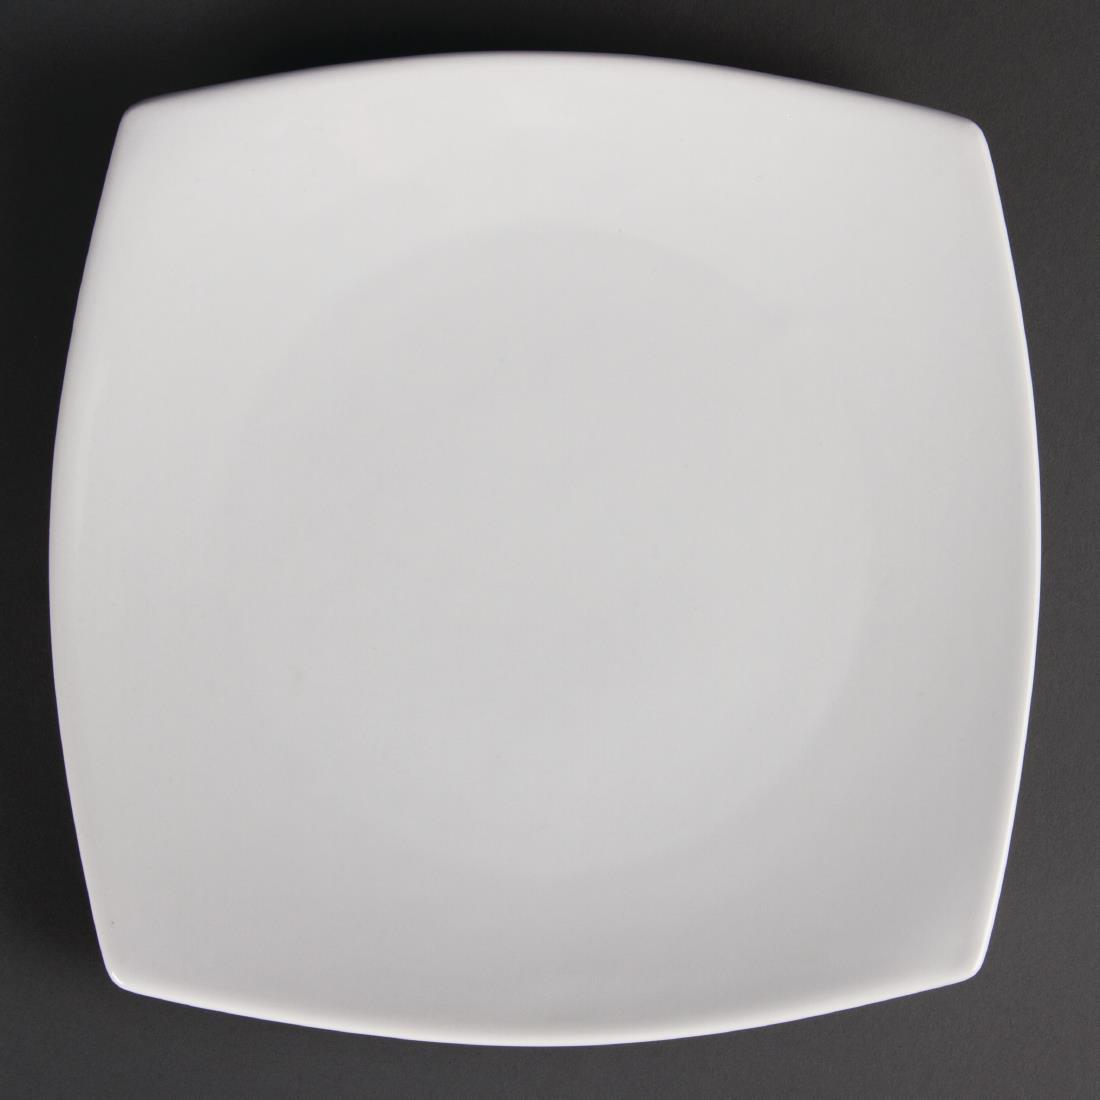 Olympia Whiteware Rounded Square Plates 240mm